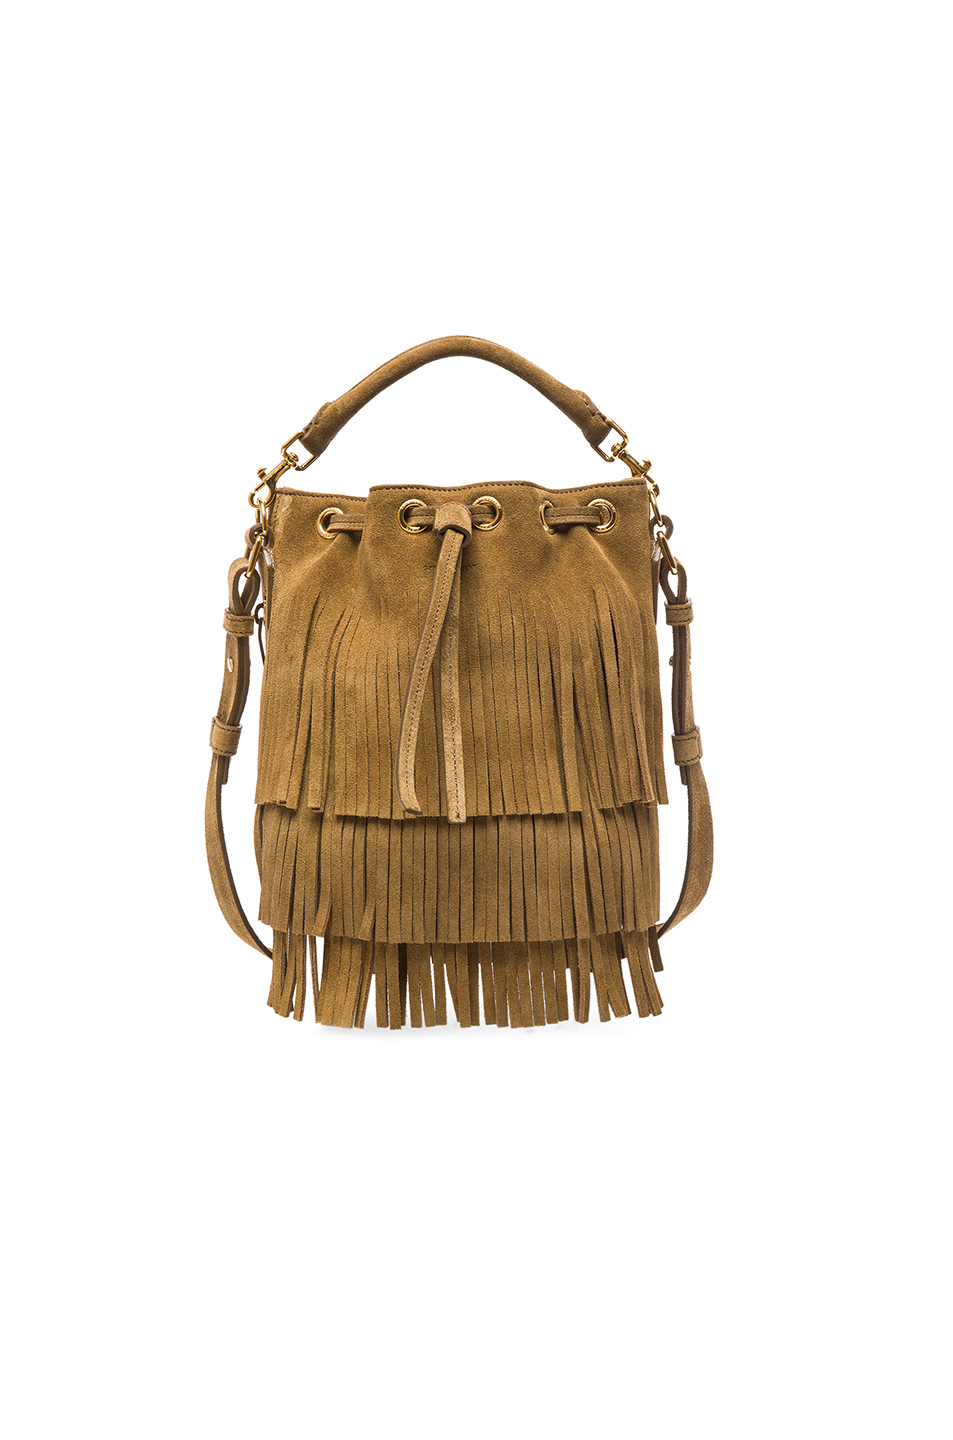 aa406dce8d Gallery. Previously sold at  FORWARD · Women s Fringed Bags Women s Saint  Laurent Emmanuelle ...